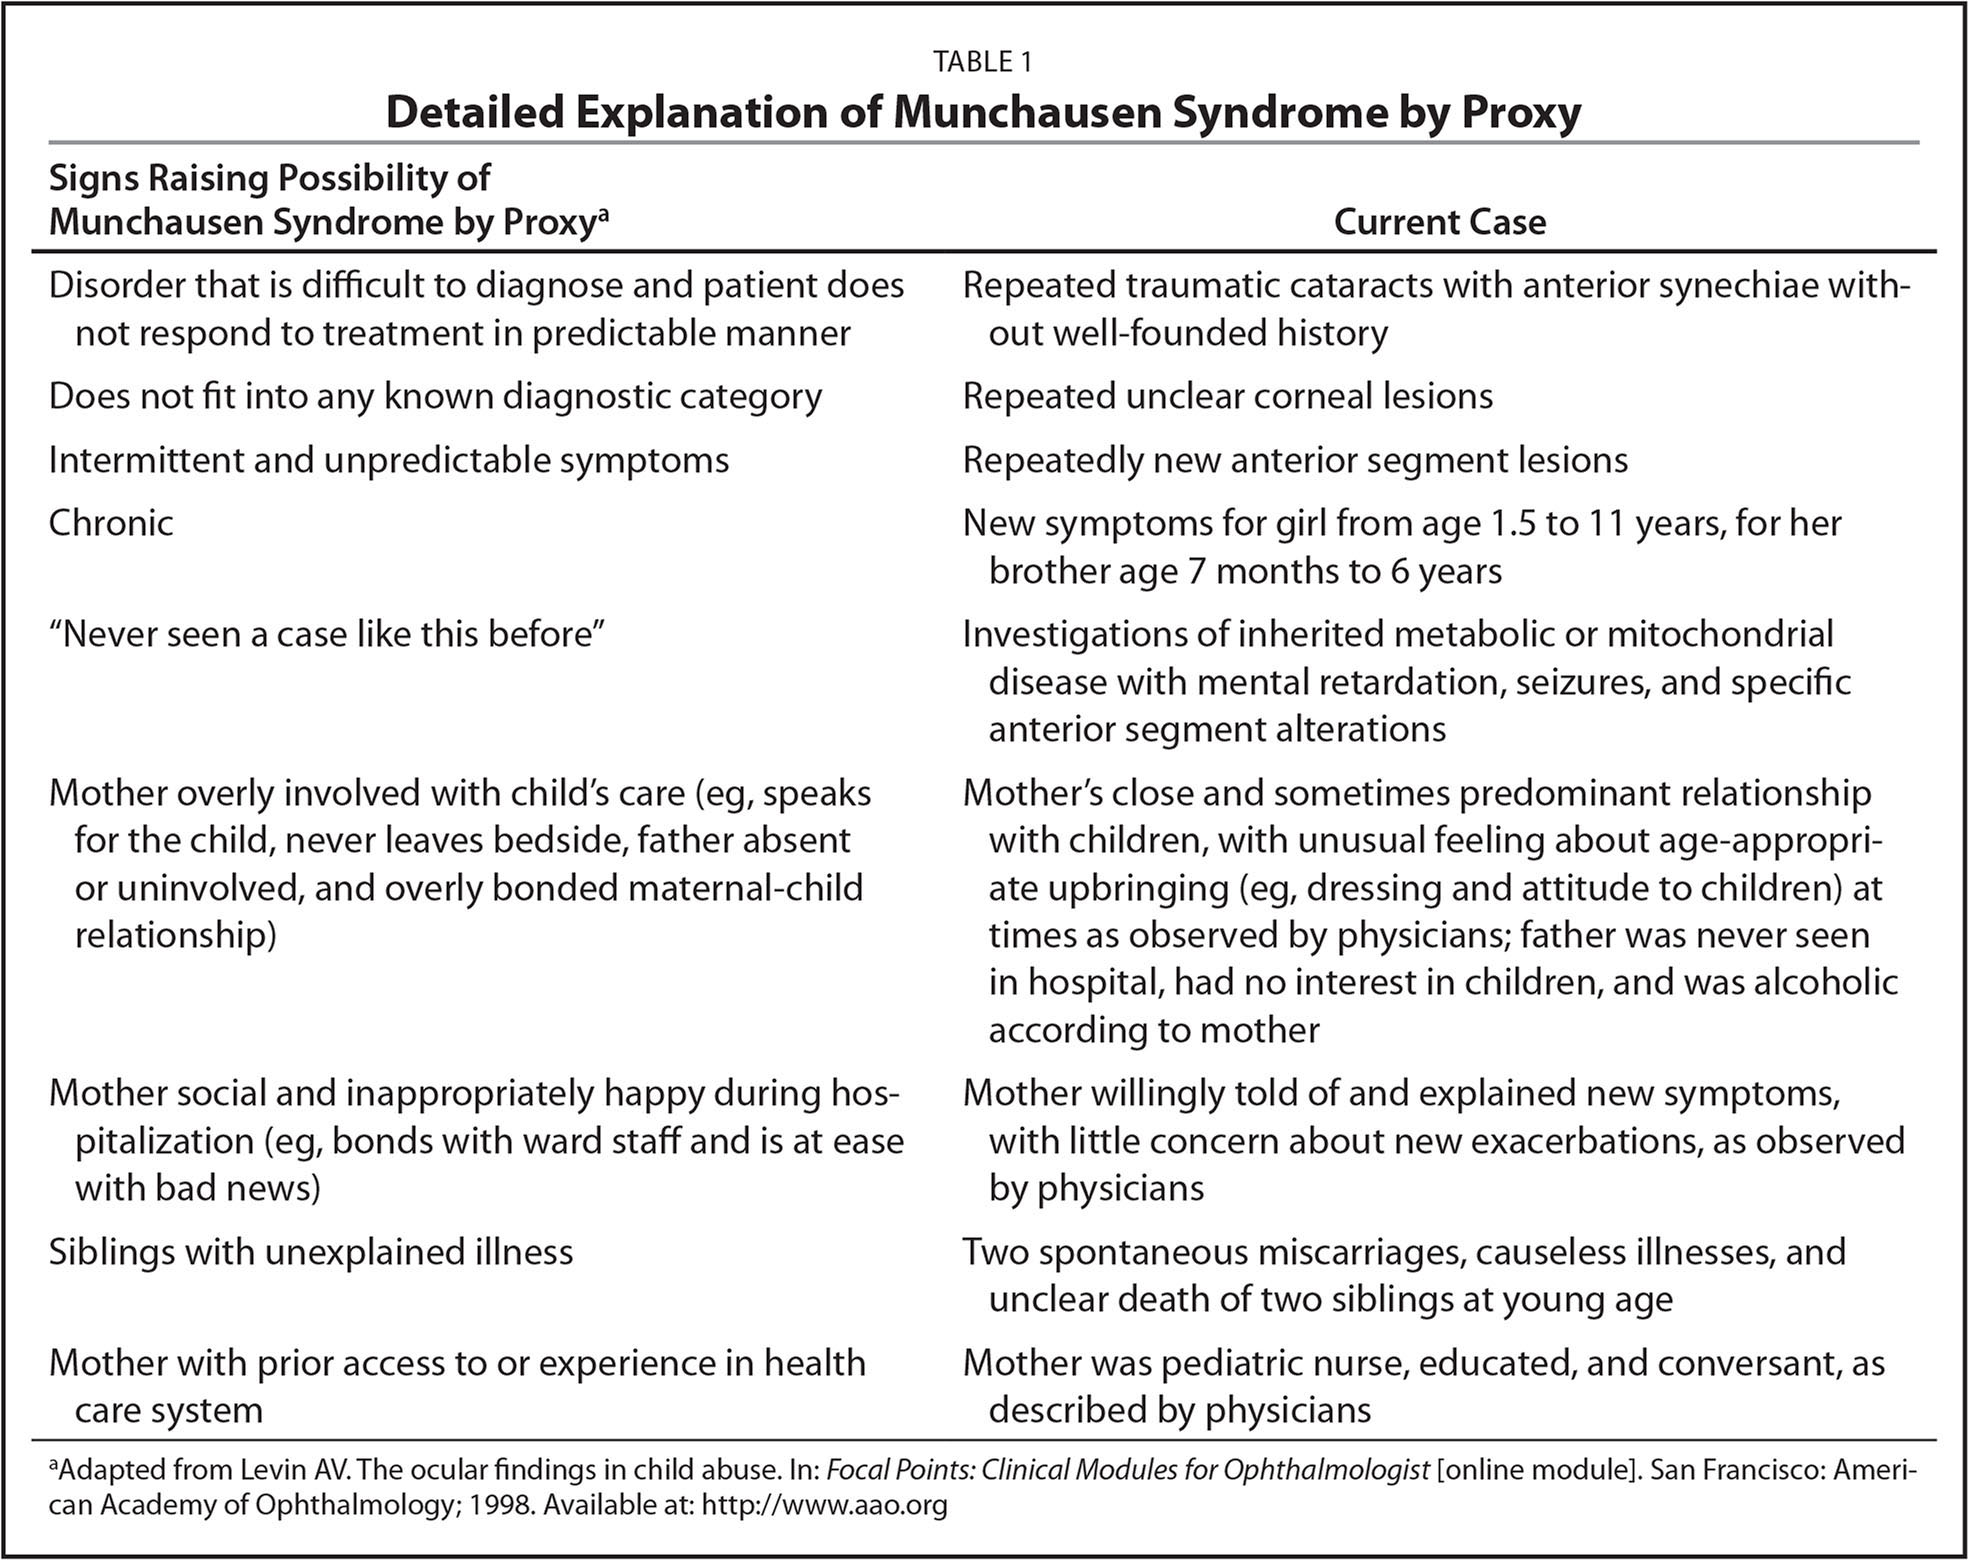 Detailed Explanation of Munchausen Syndrome by Proxy